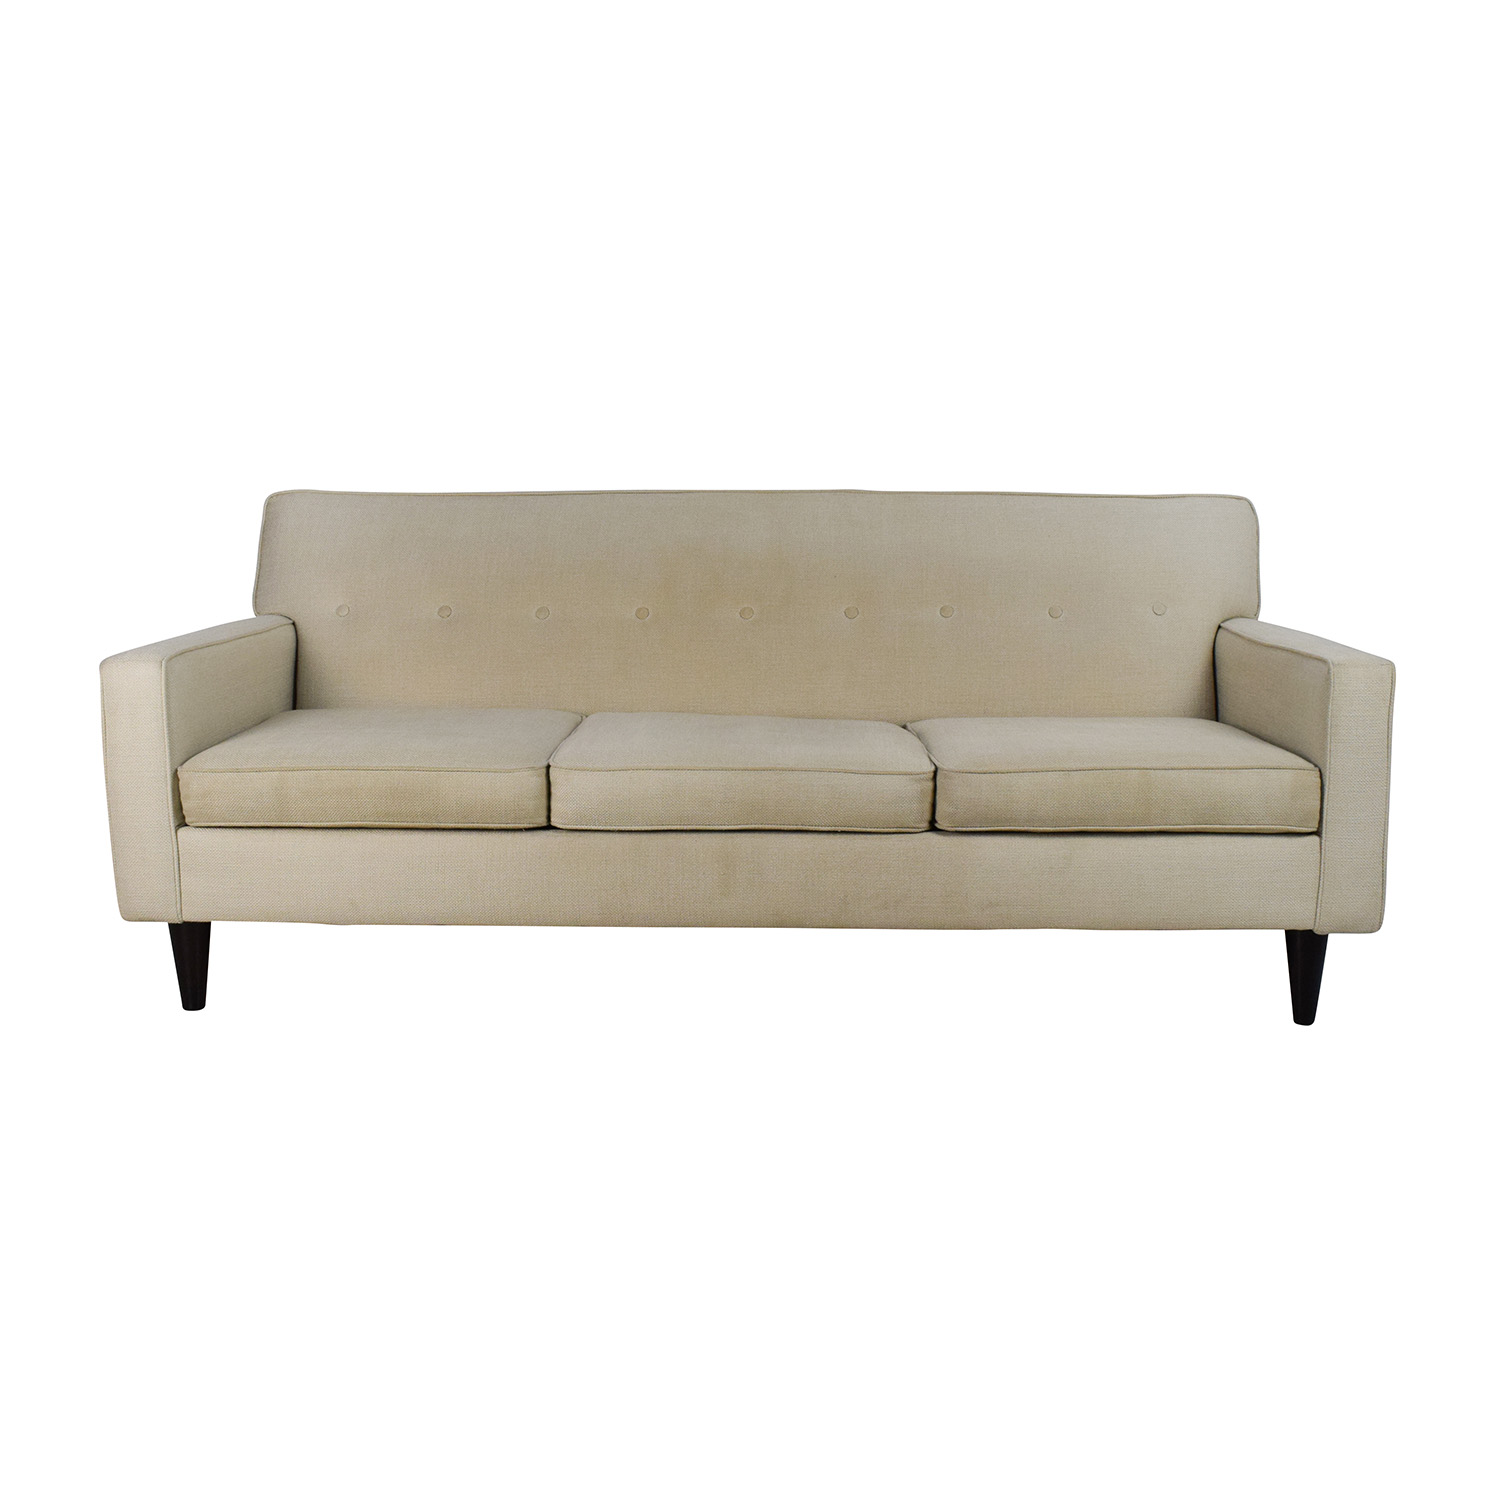 Max Home Furniture Max Home Mid Century Sofa On Sale ...